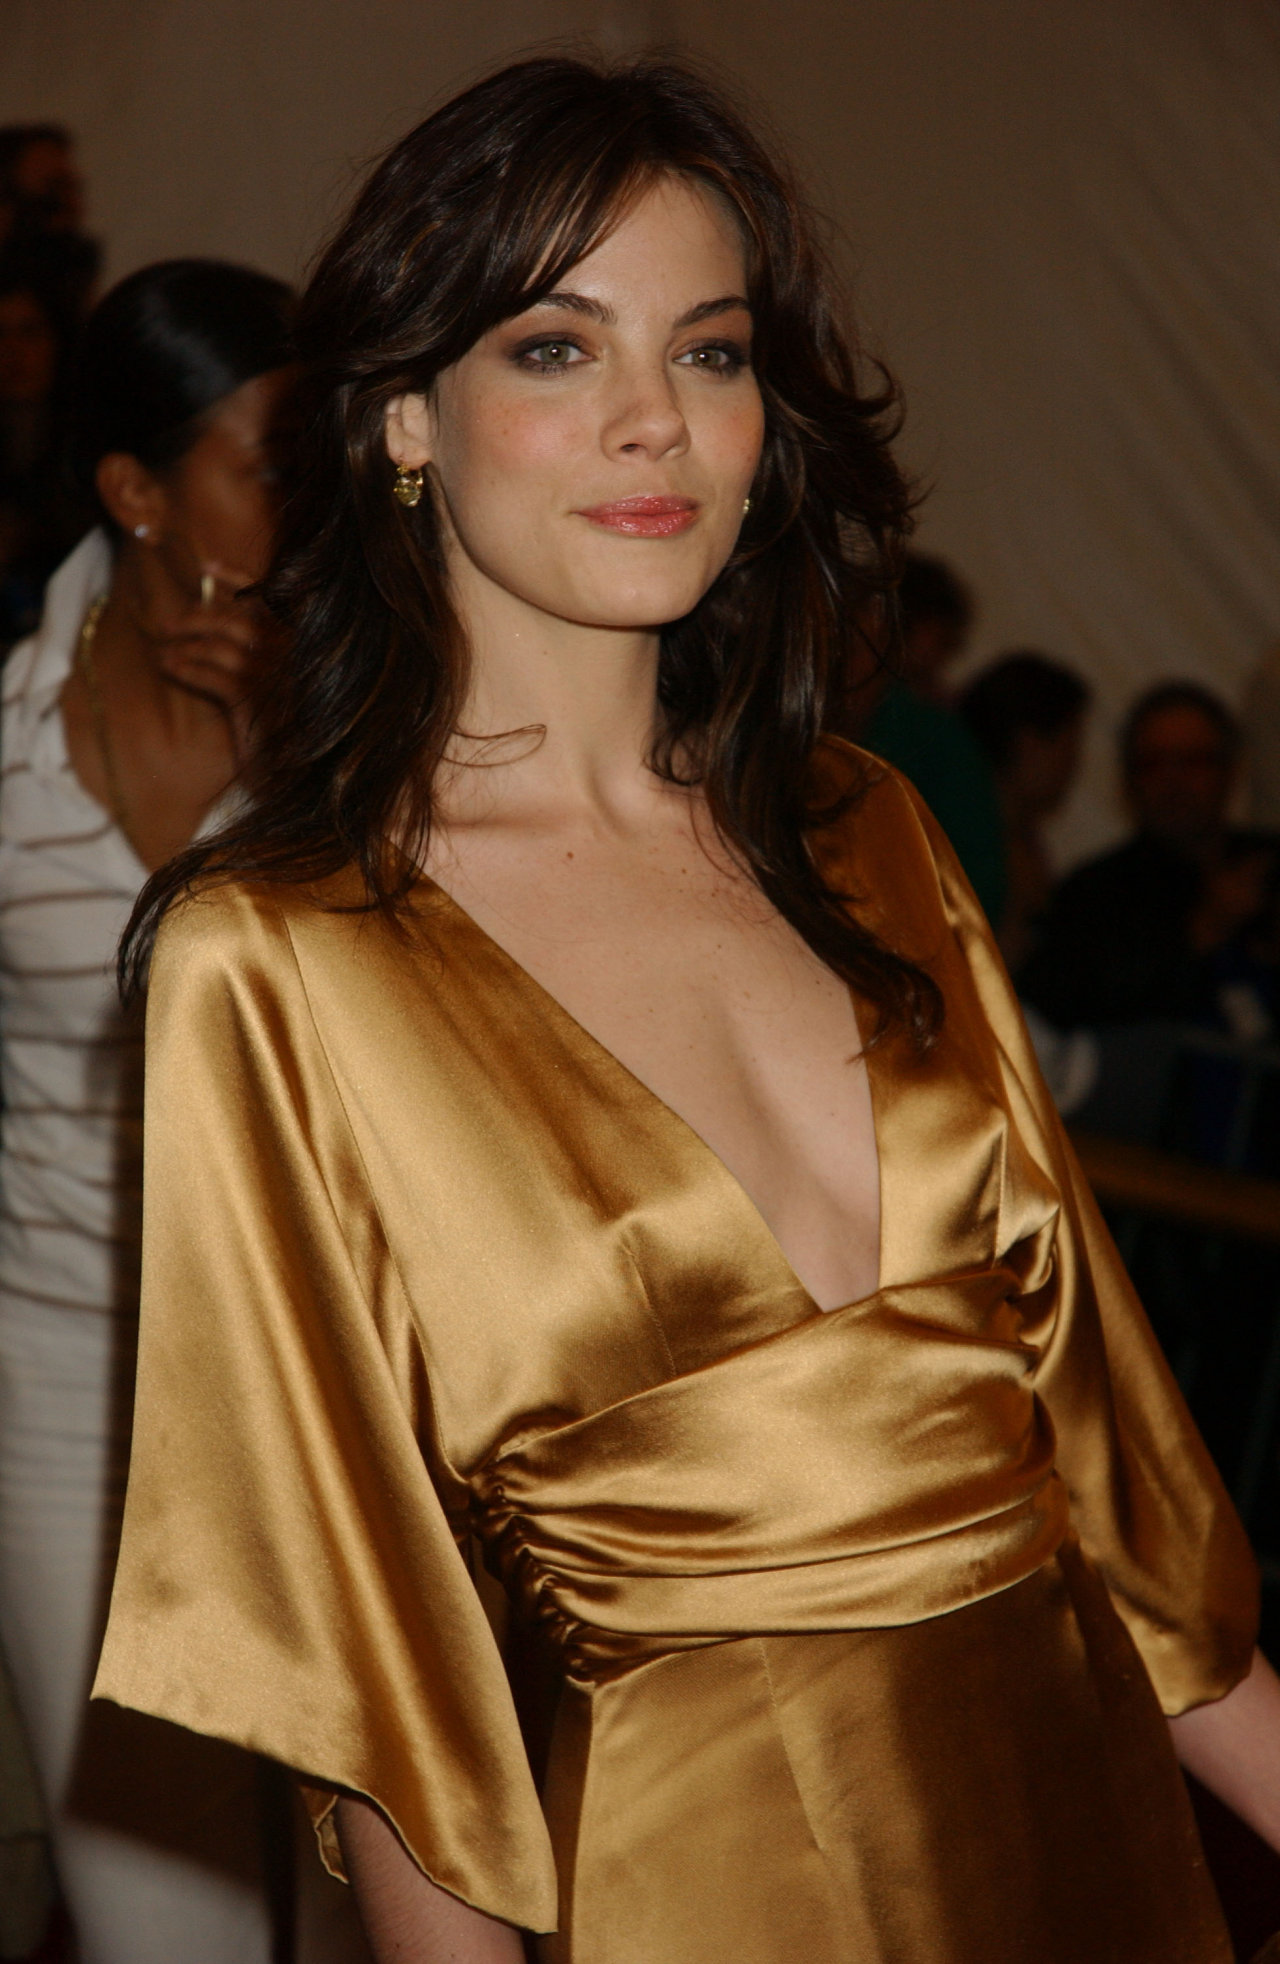 Michelle monaghan sexy